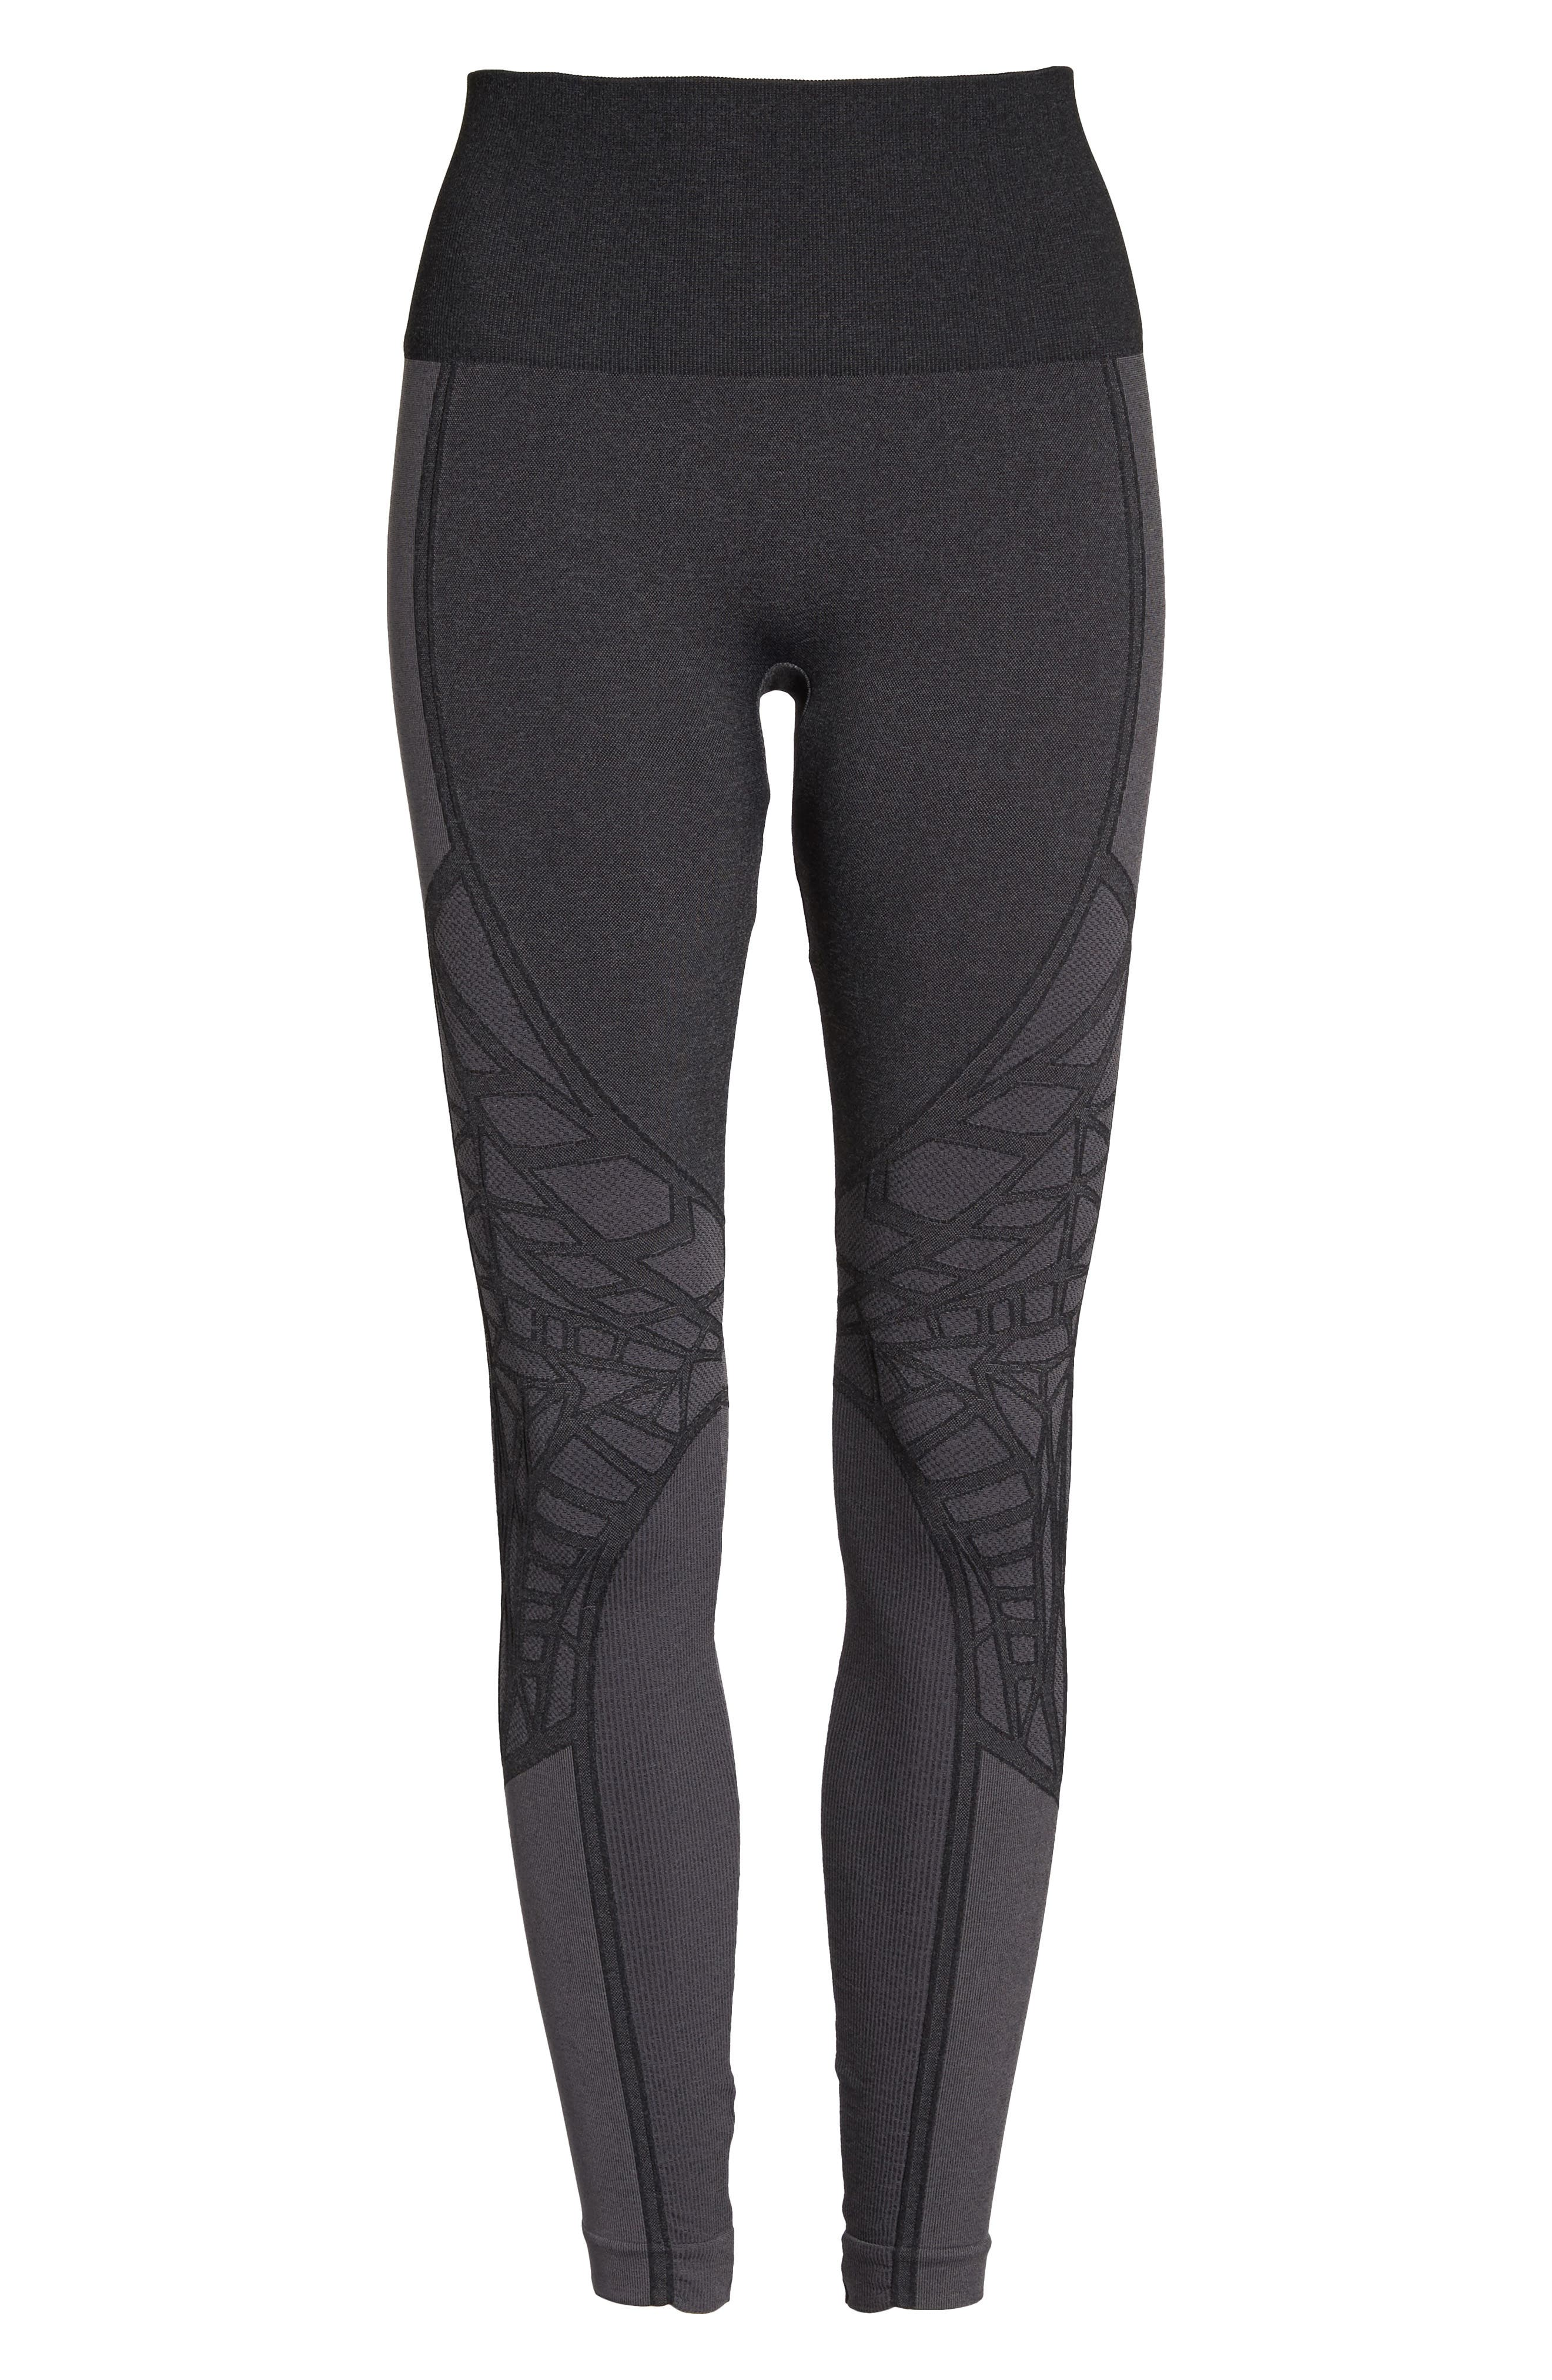 Revolution Leggings,                             Alternate thumbnail 7, color,                             Excalibur And Black